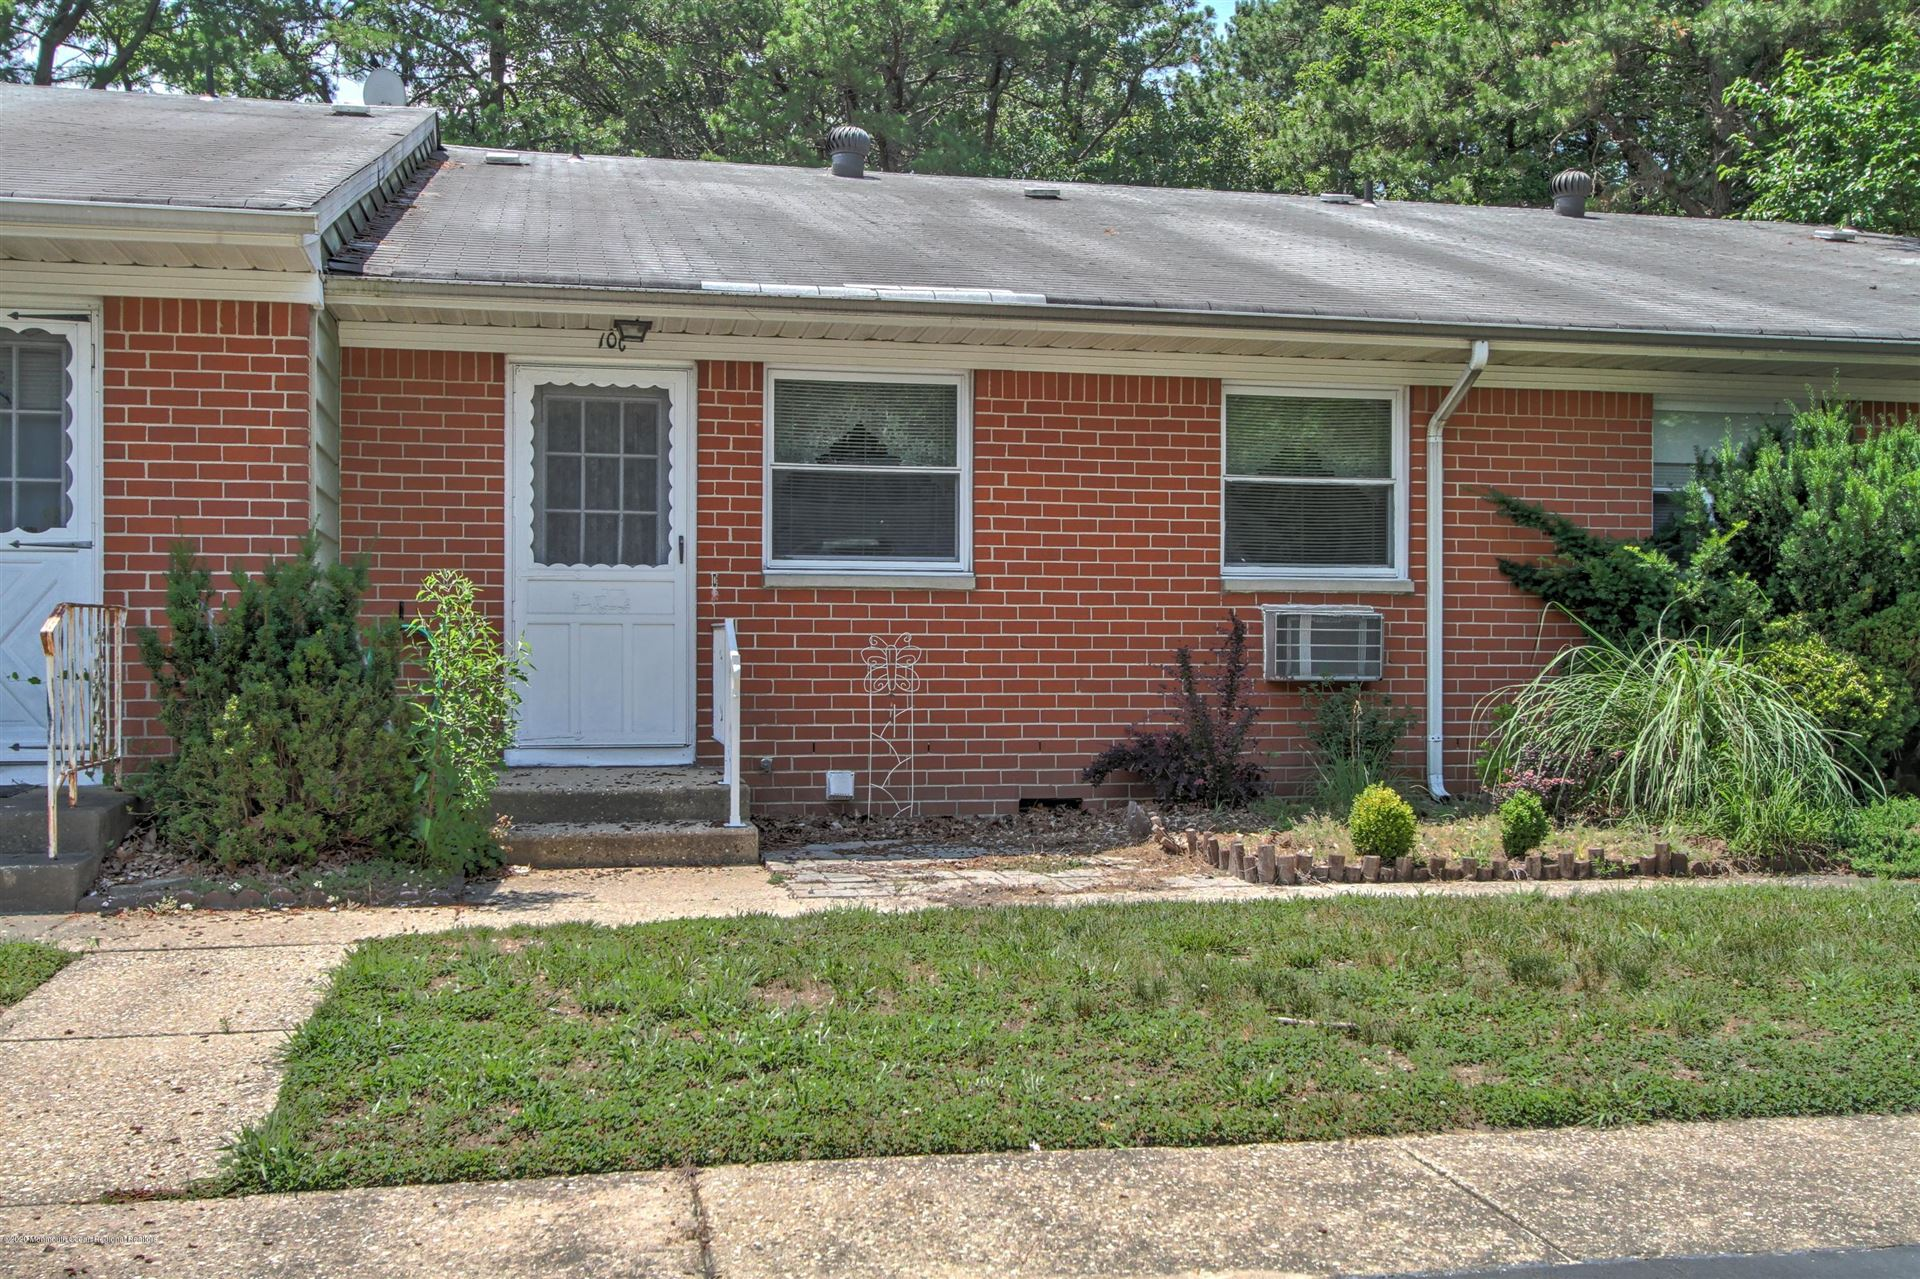 10C Bennington Lane, Whiting, NJ 08759 - #: 22022683